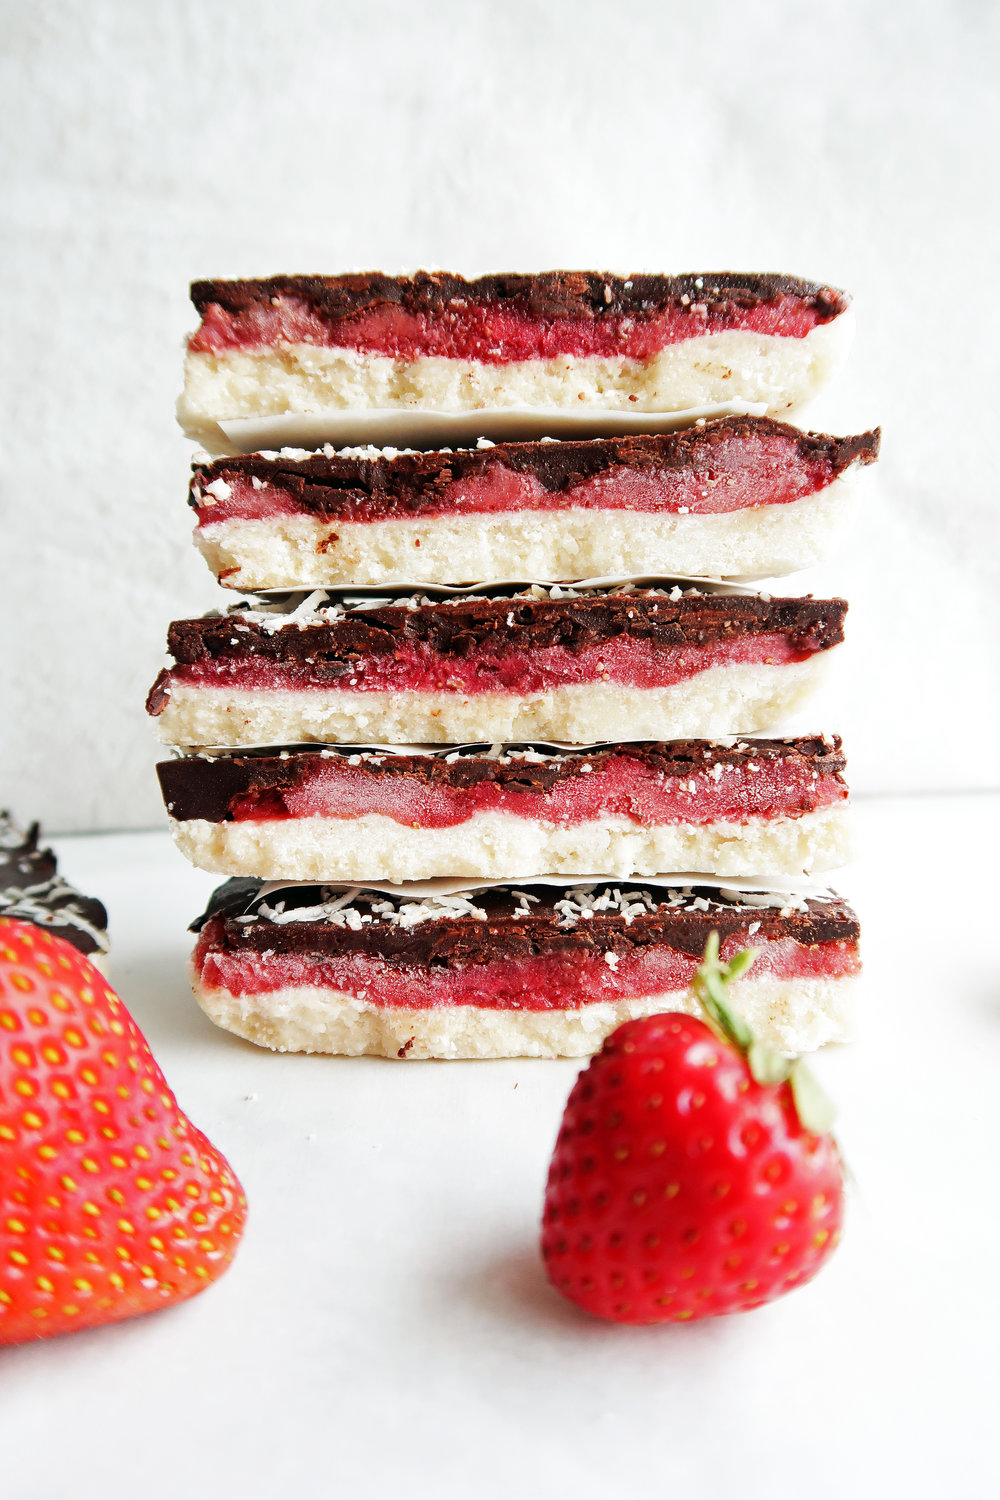 No-Bake Chocolate Strawberry Coconut Bars: A quick and easy no-bake, gluten-free, vegan dessert. www.yayforfood.com